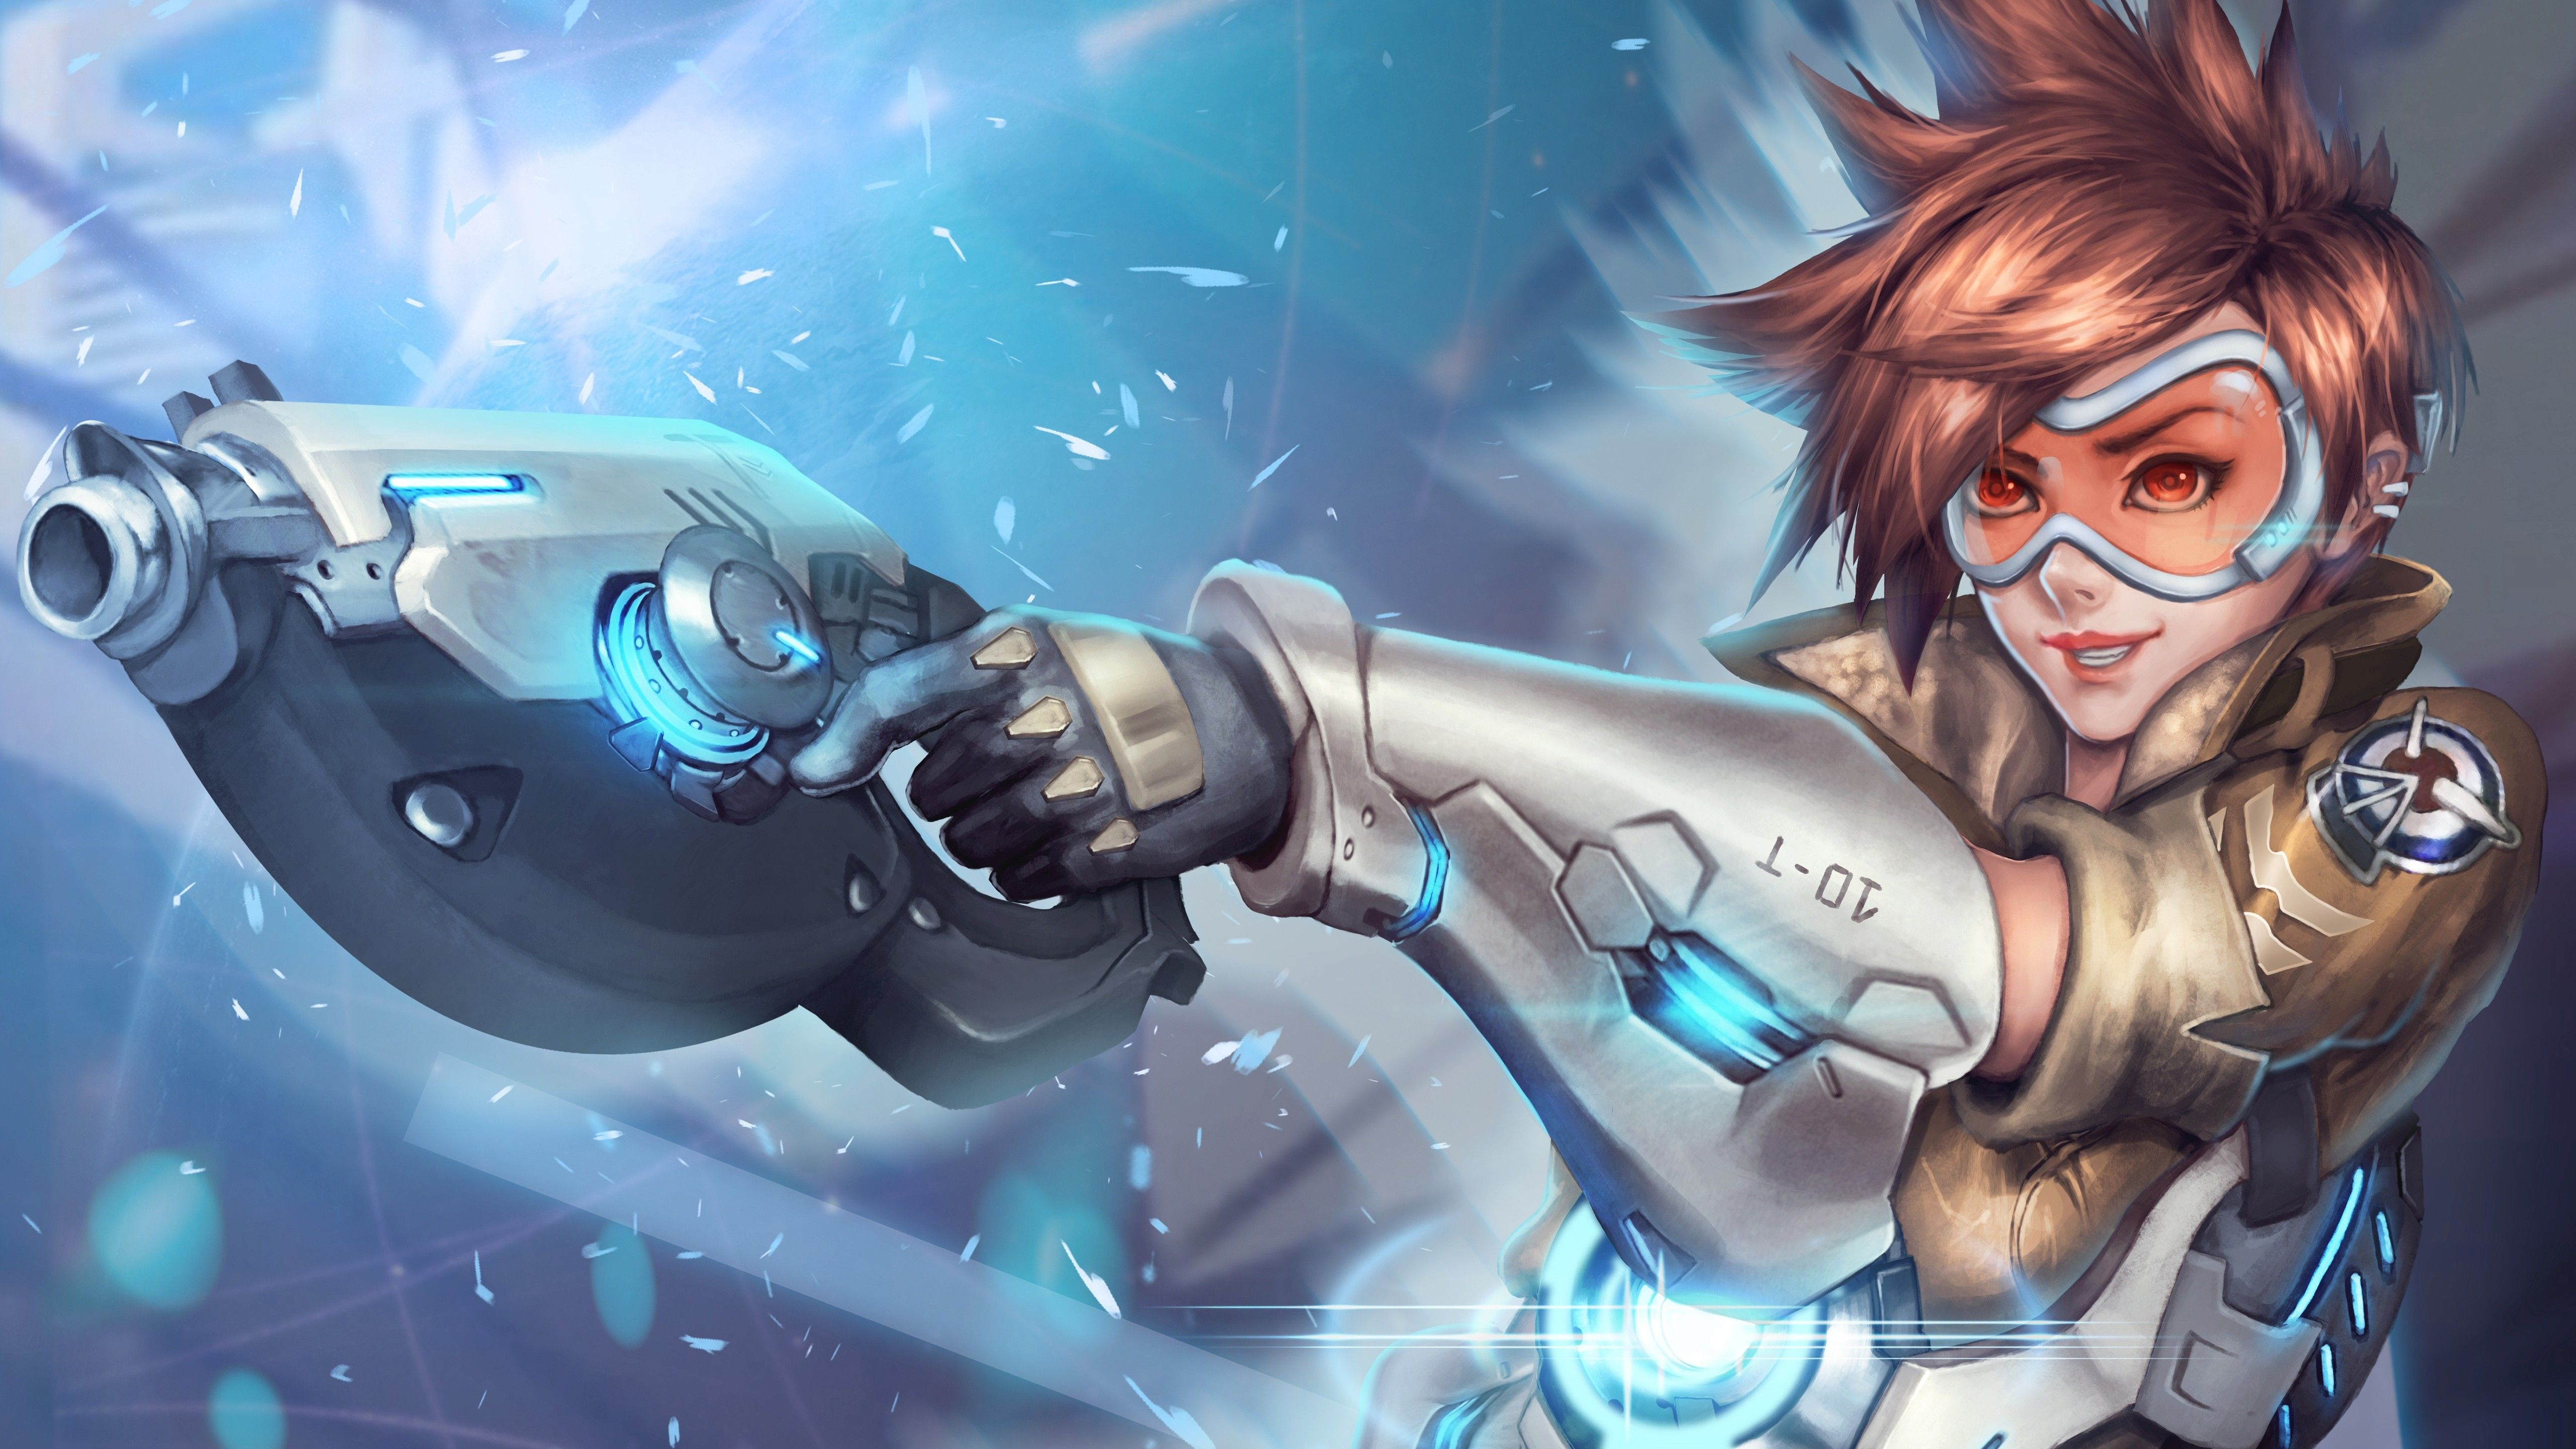 Tracer Overwatch Wallpapers Hd Wallpapers Overwatch Wallpapers Overwatch Tracer Overwatch